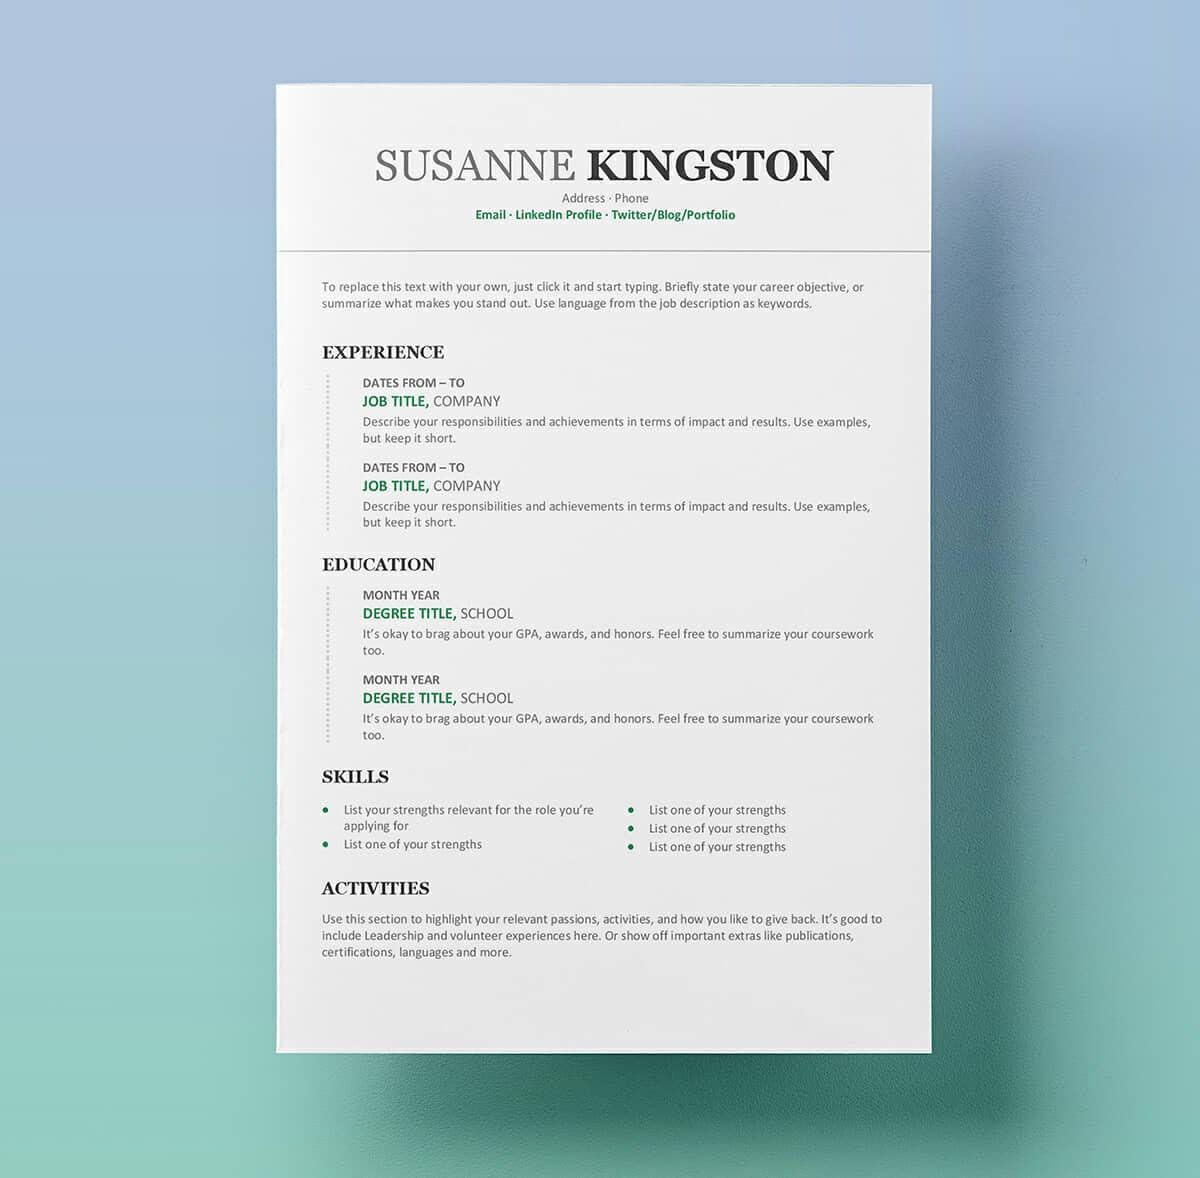 008 Archaicawful Resume Template Free Word Design  Download 2020 CvFull